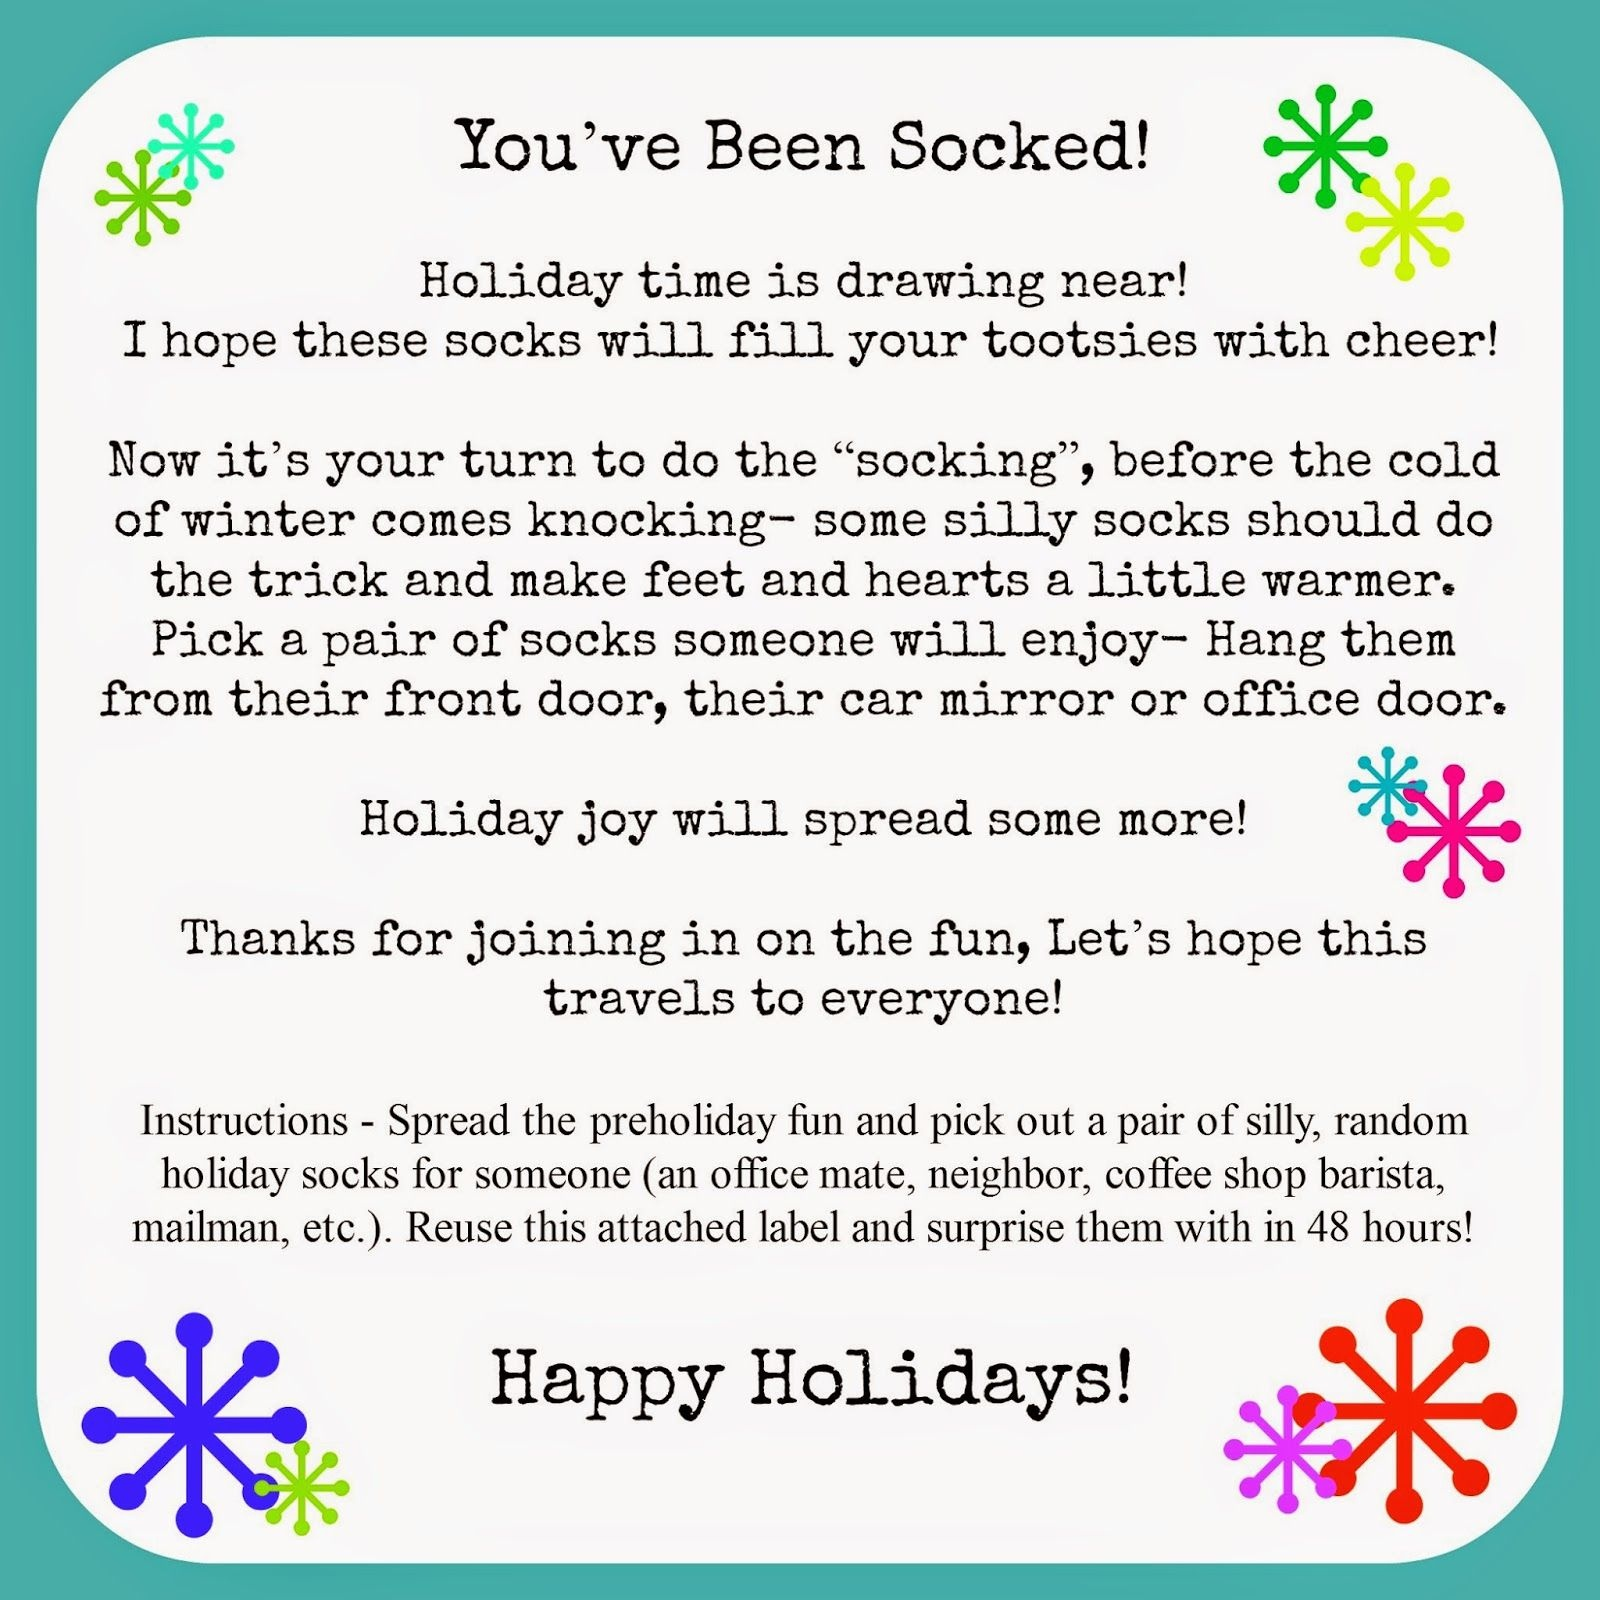 You've Been Socked! Spread Some Pre-Holiday Cheer With Silly Socks - You Ve Been Socked Free Printable